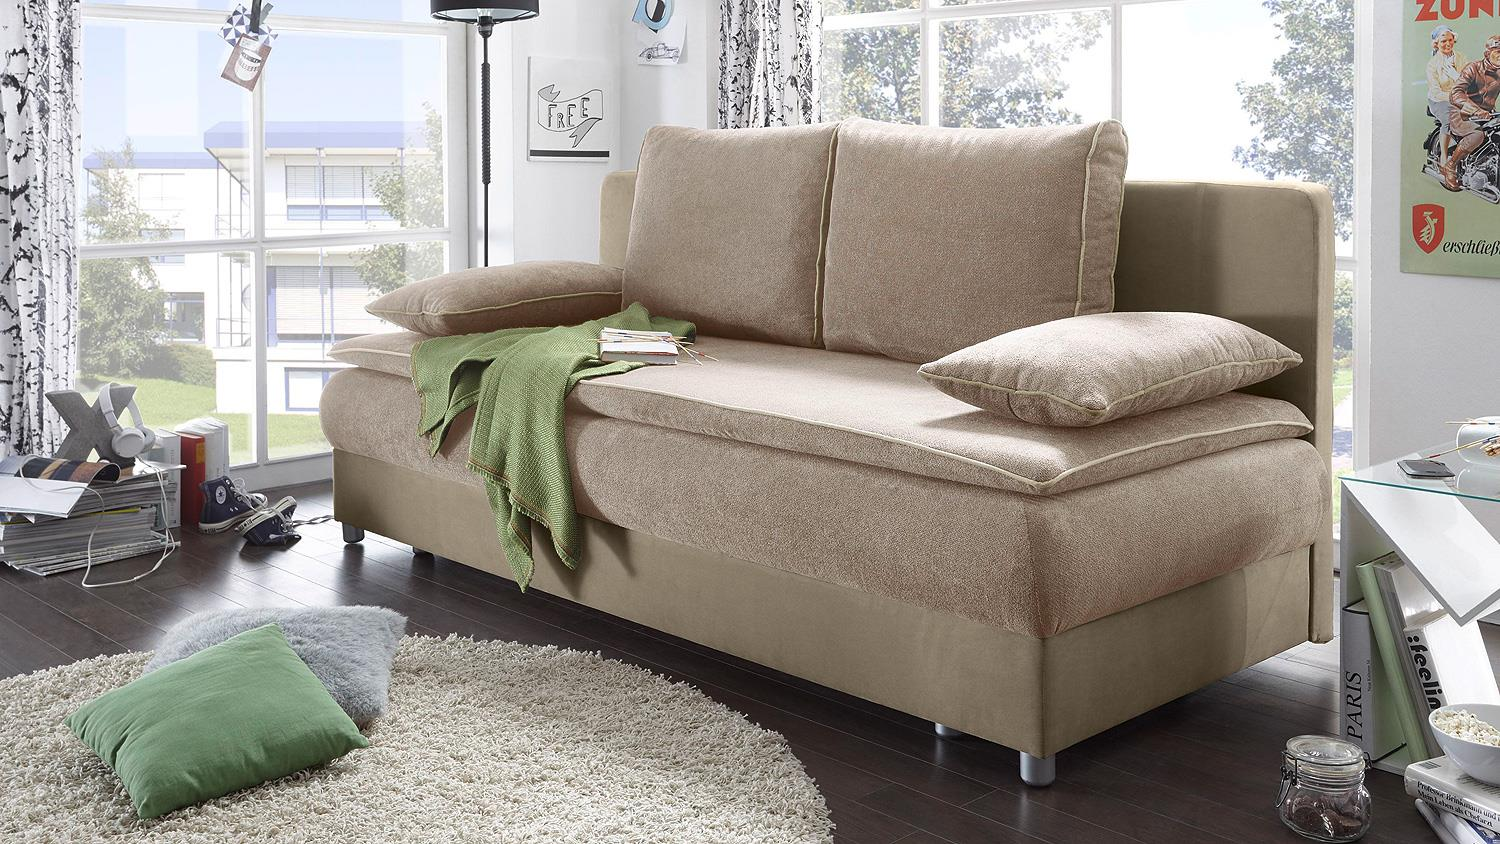 schlafsofa svenja sofa in beige braun dauerschl fer mit bettkasten. Black Bedroom Furniture Sets. Home Design Ideas